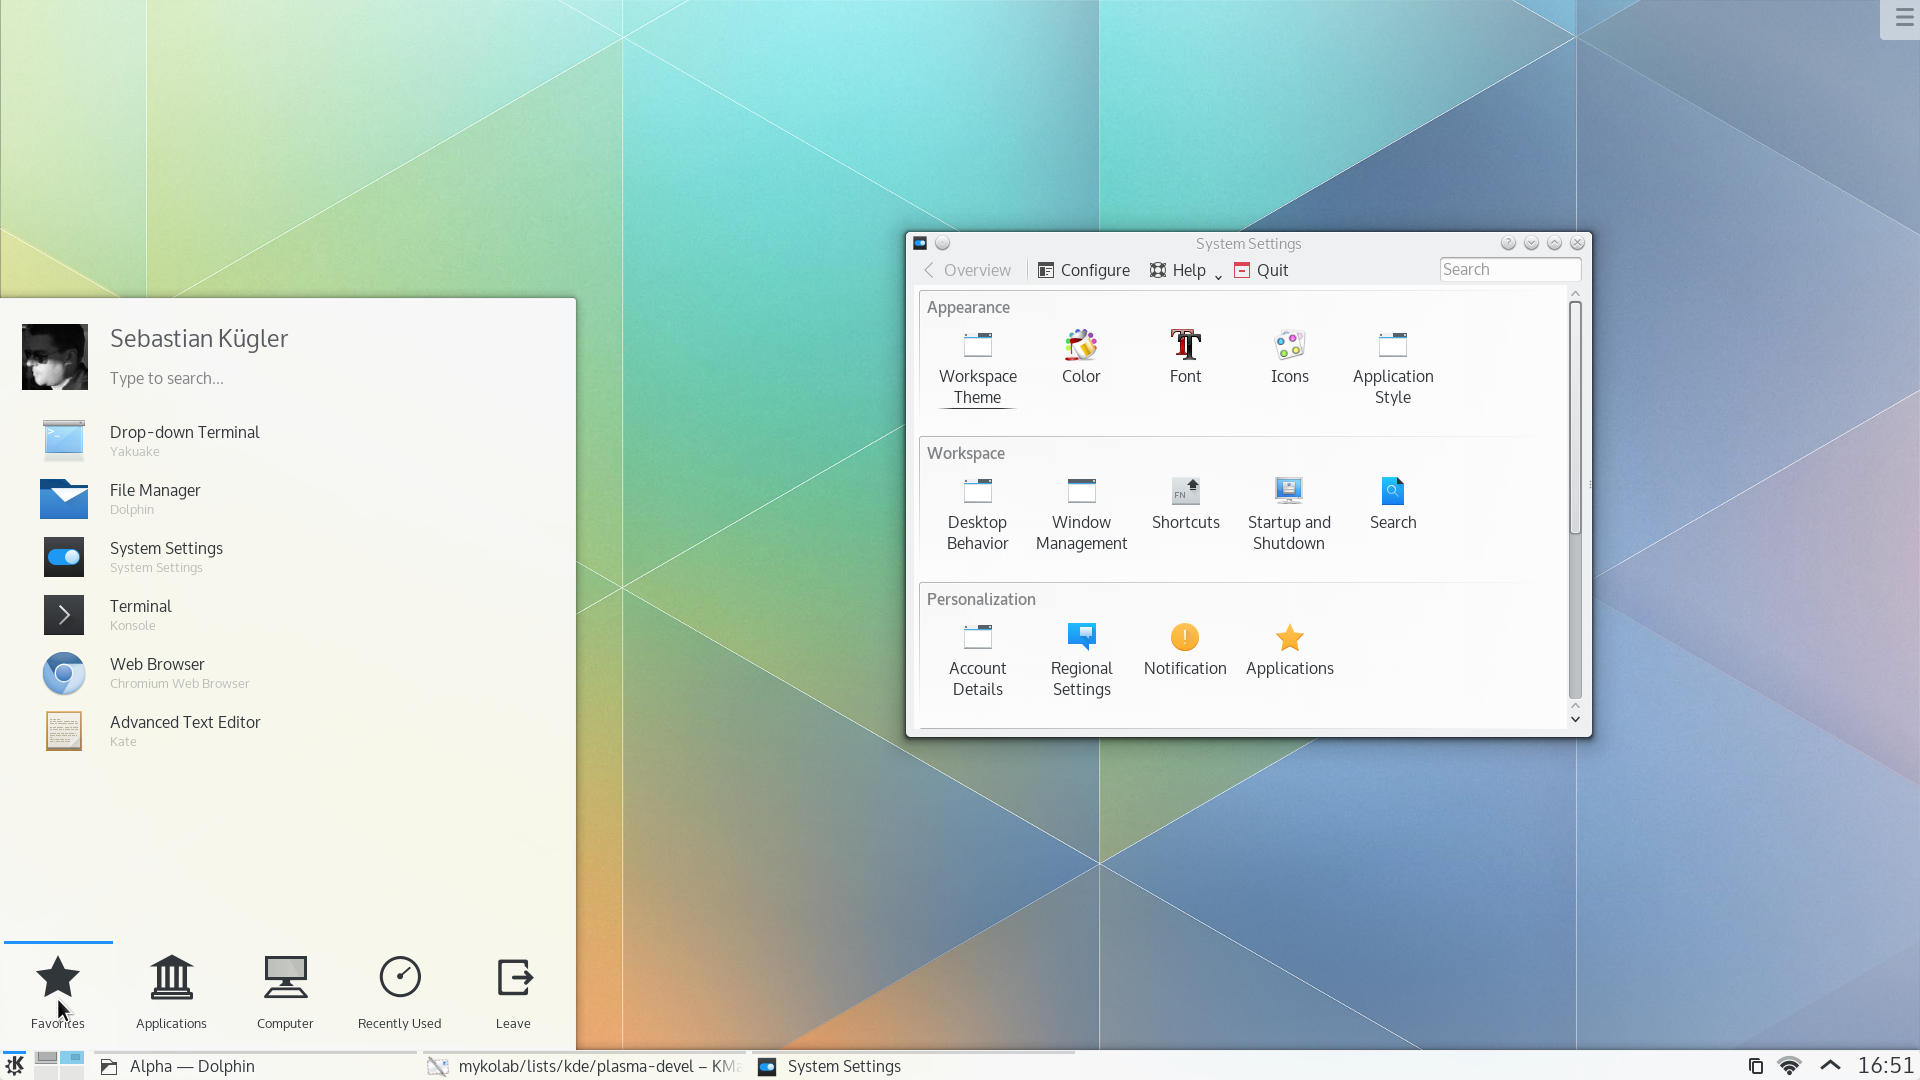 KDE Plasma 5 coming to FreeBSD Ports soon - FreeBSDNews com